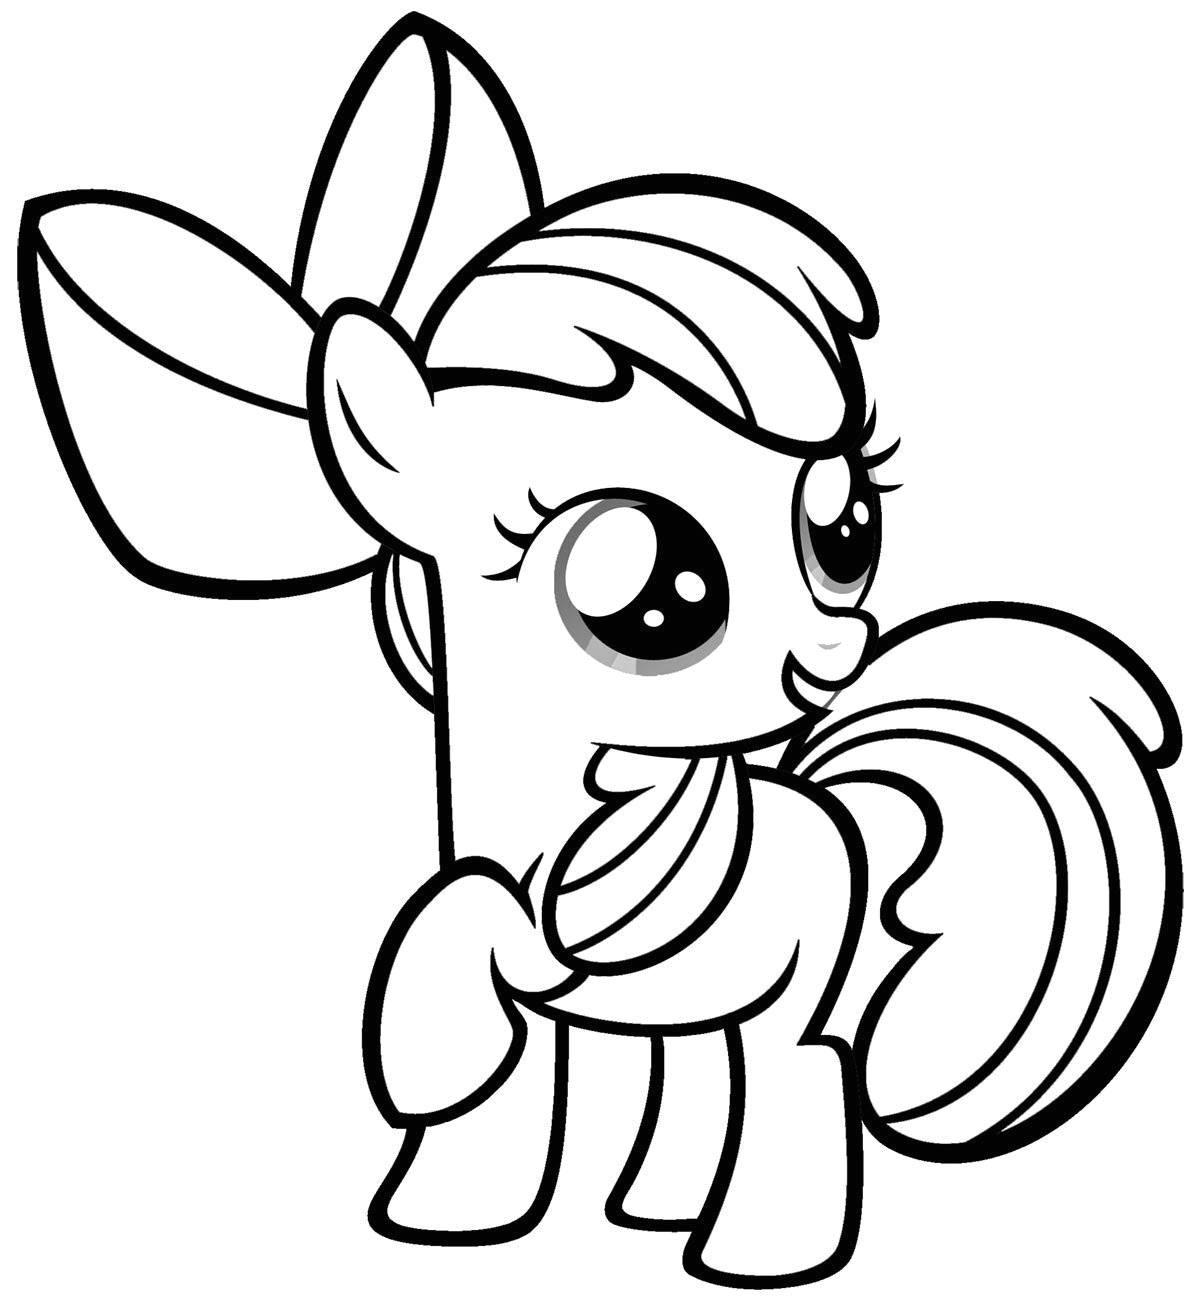 Free Printable My Little Pony Coloring Pages Coloring Pages My Little Pony Coloring Pages Free and